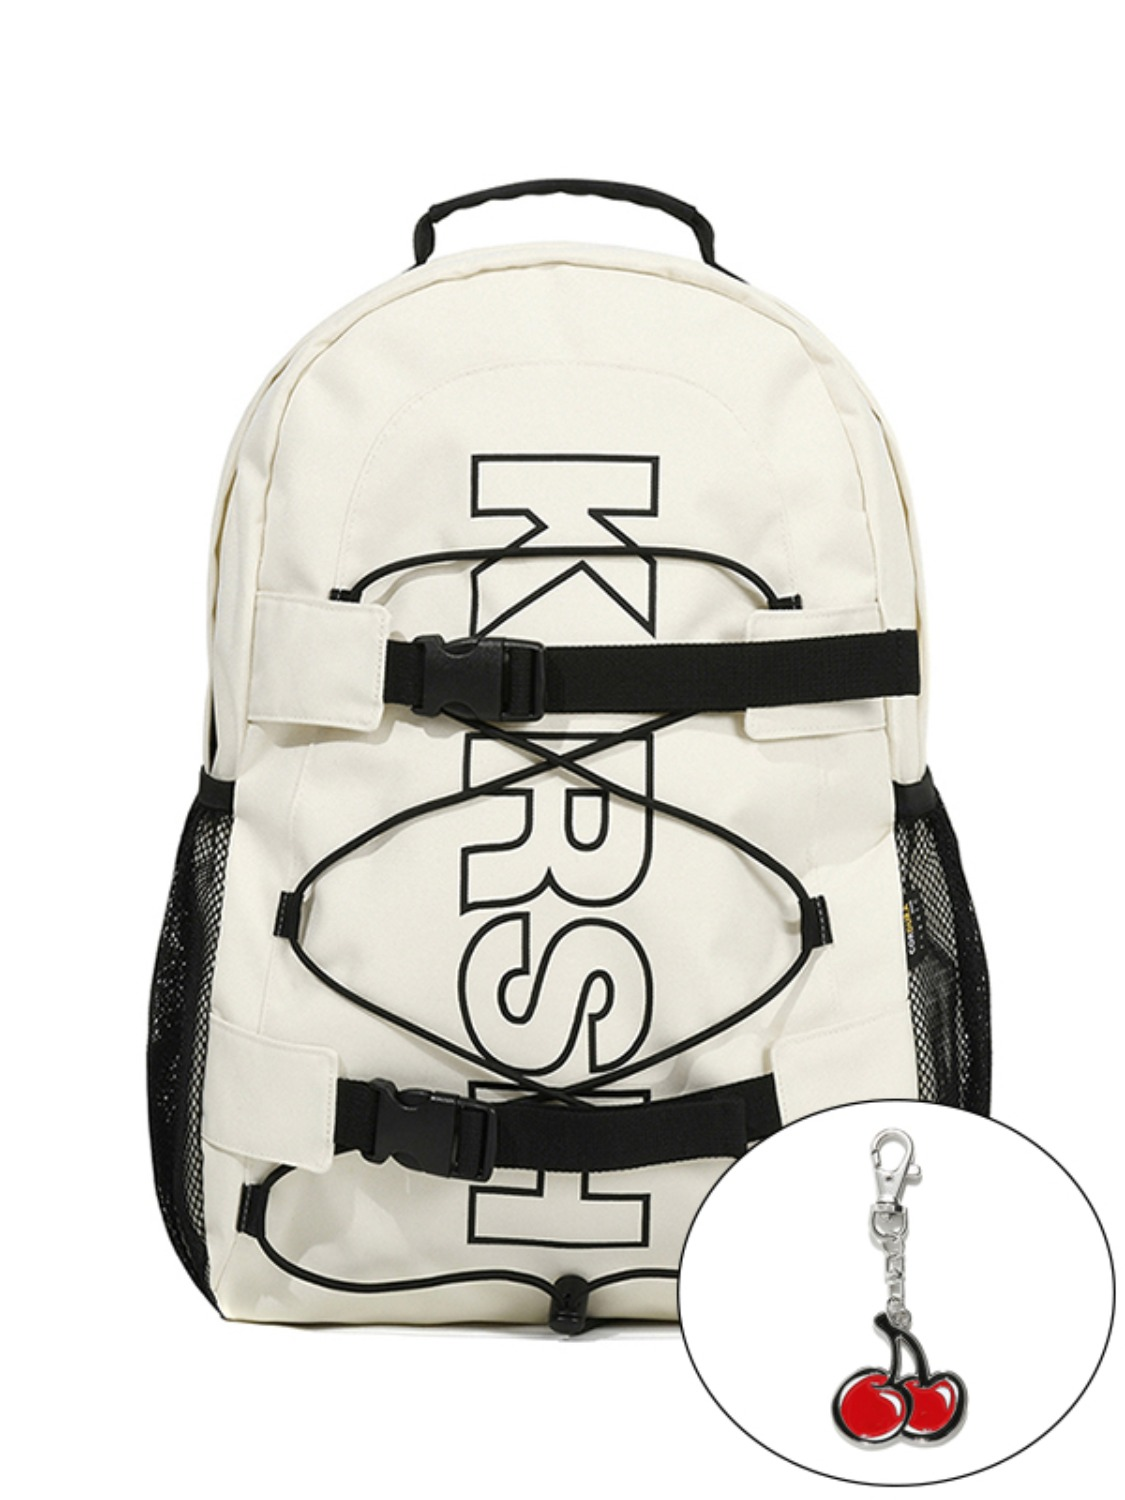 KIRSH POCKET SPORTS BACKPACK JS [IVORY]